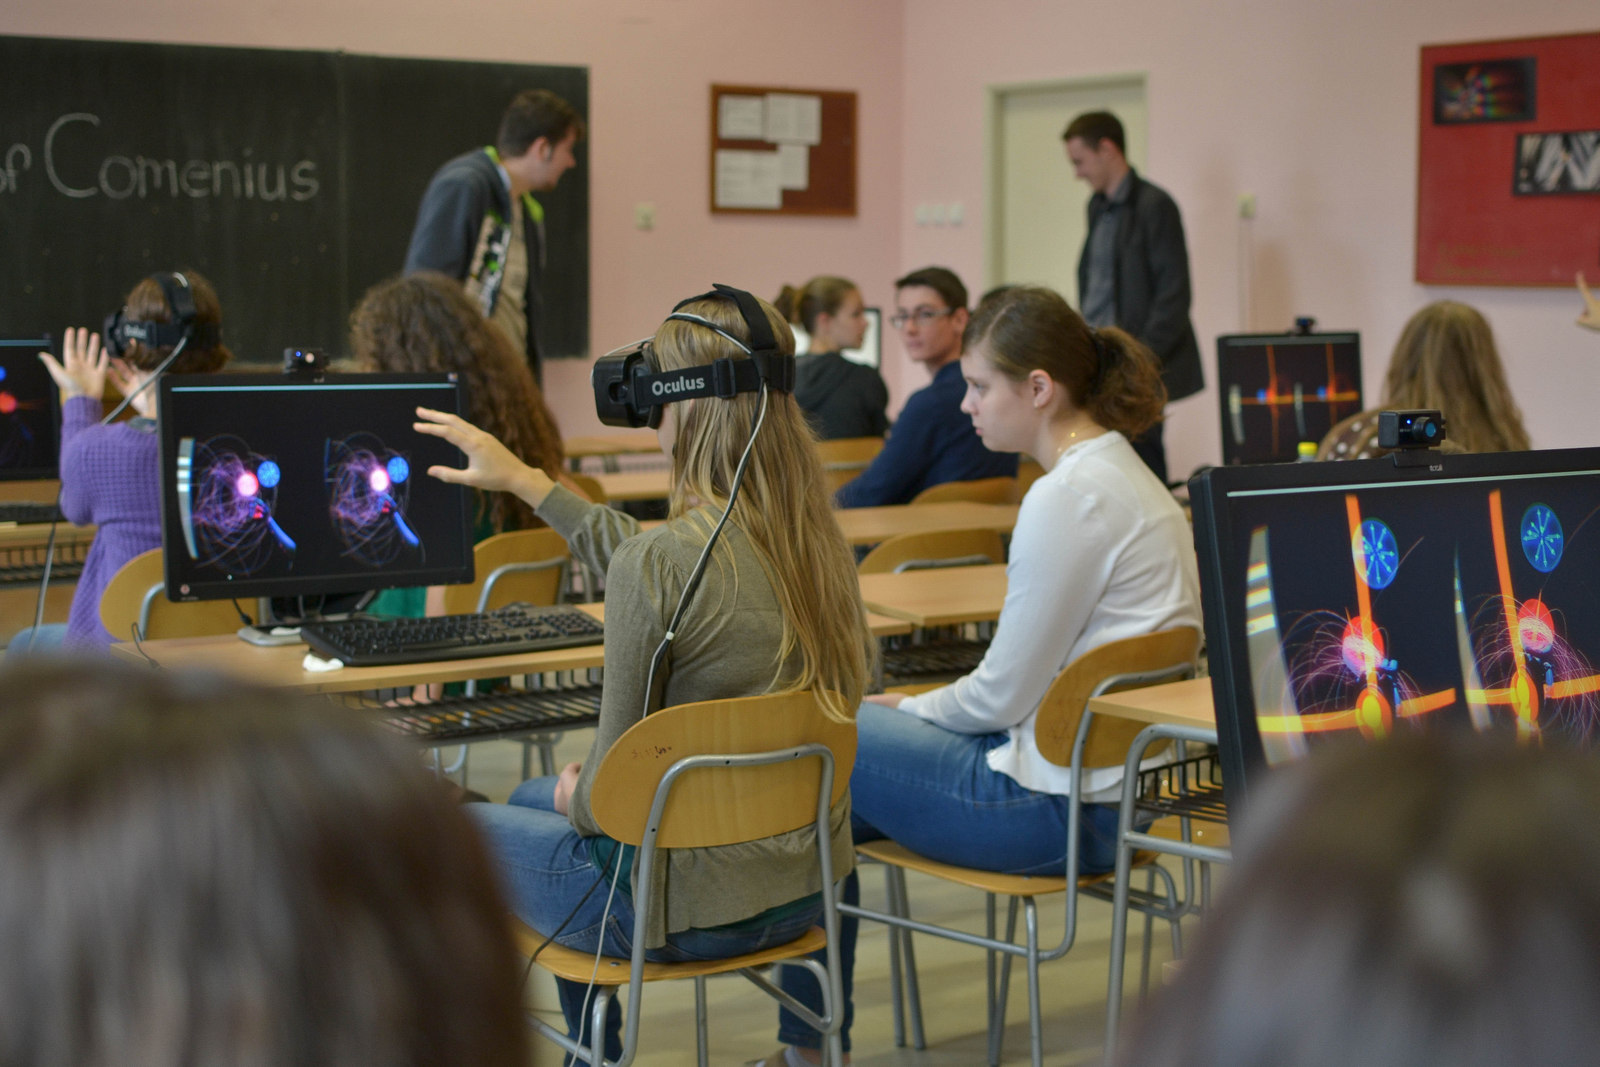 Virtual Reality Use in Education